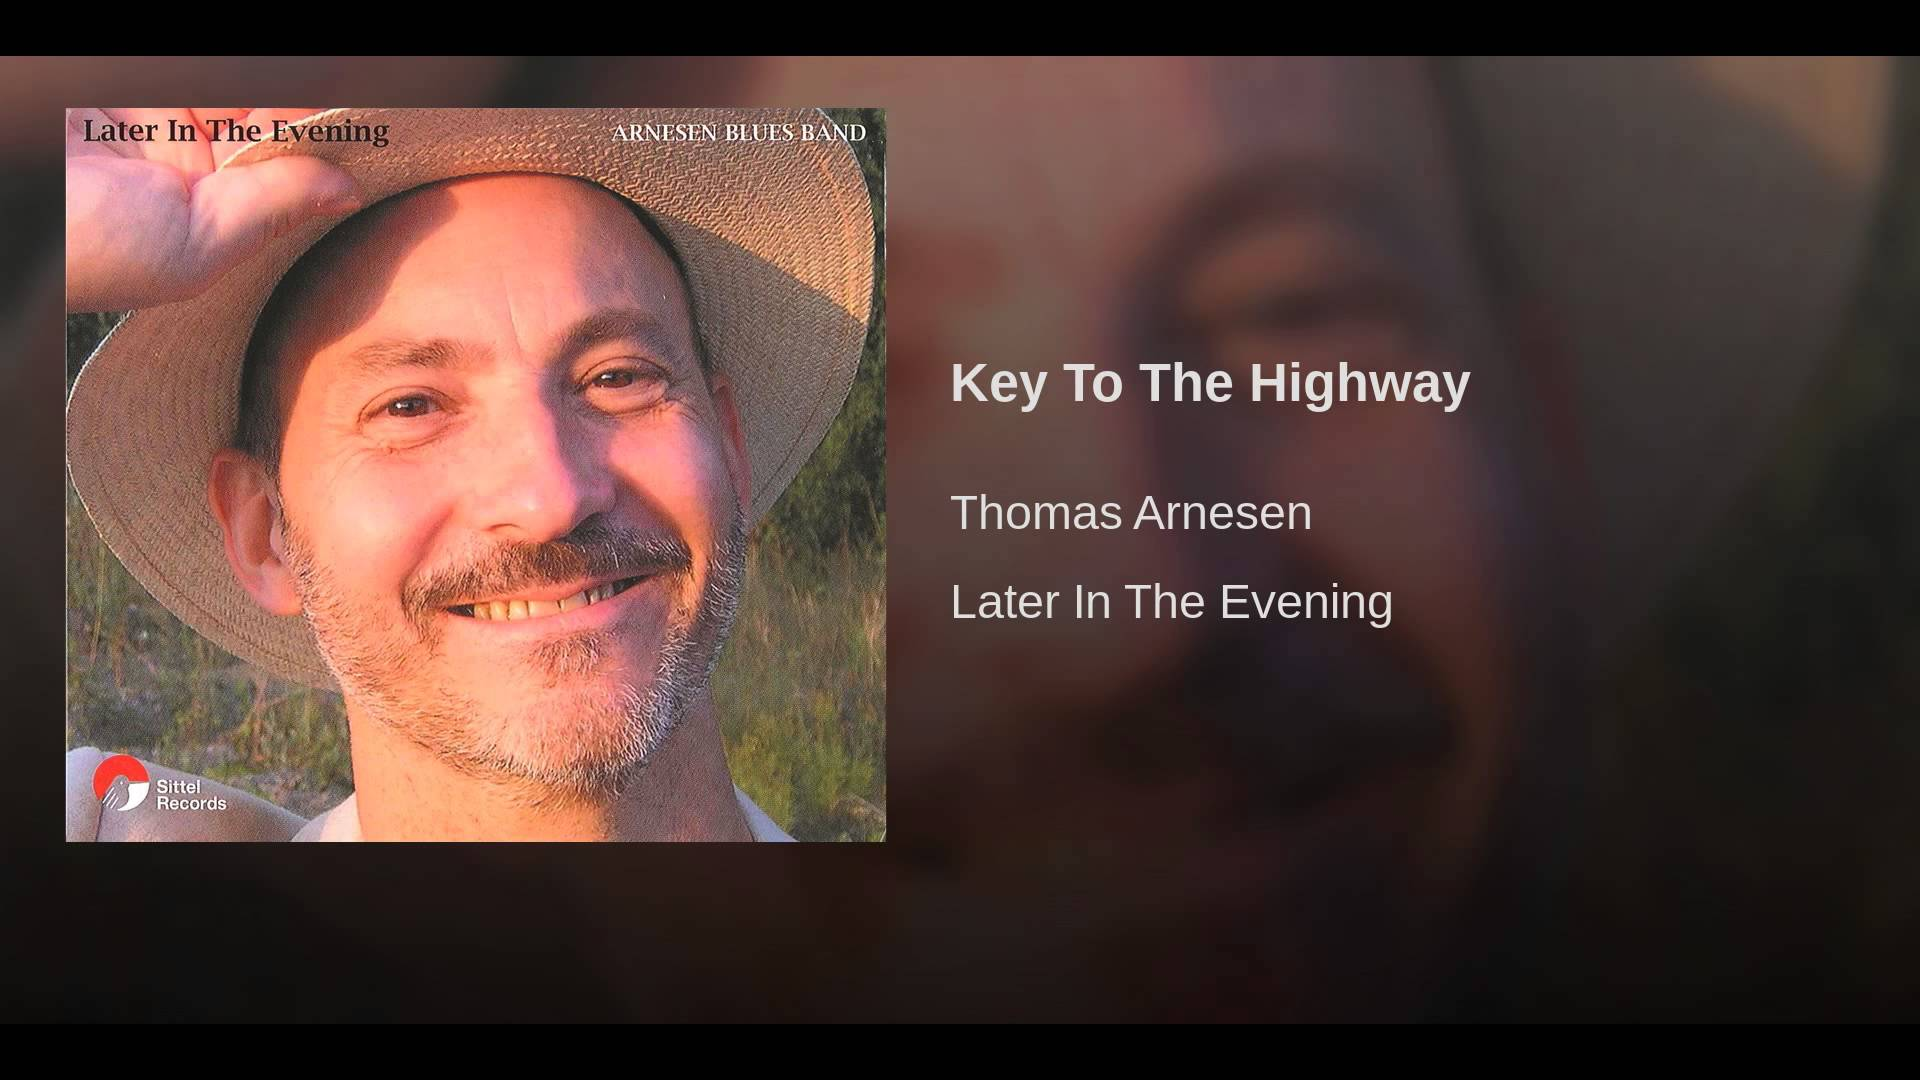 Key To The Highway